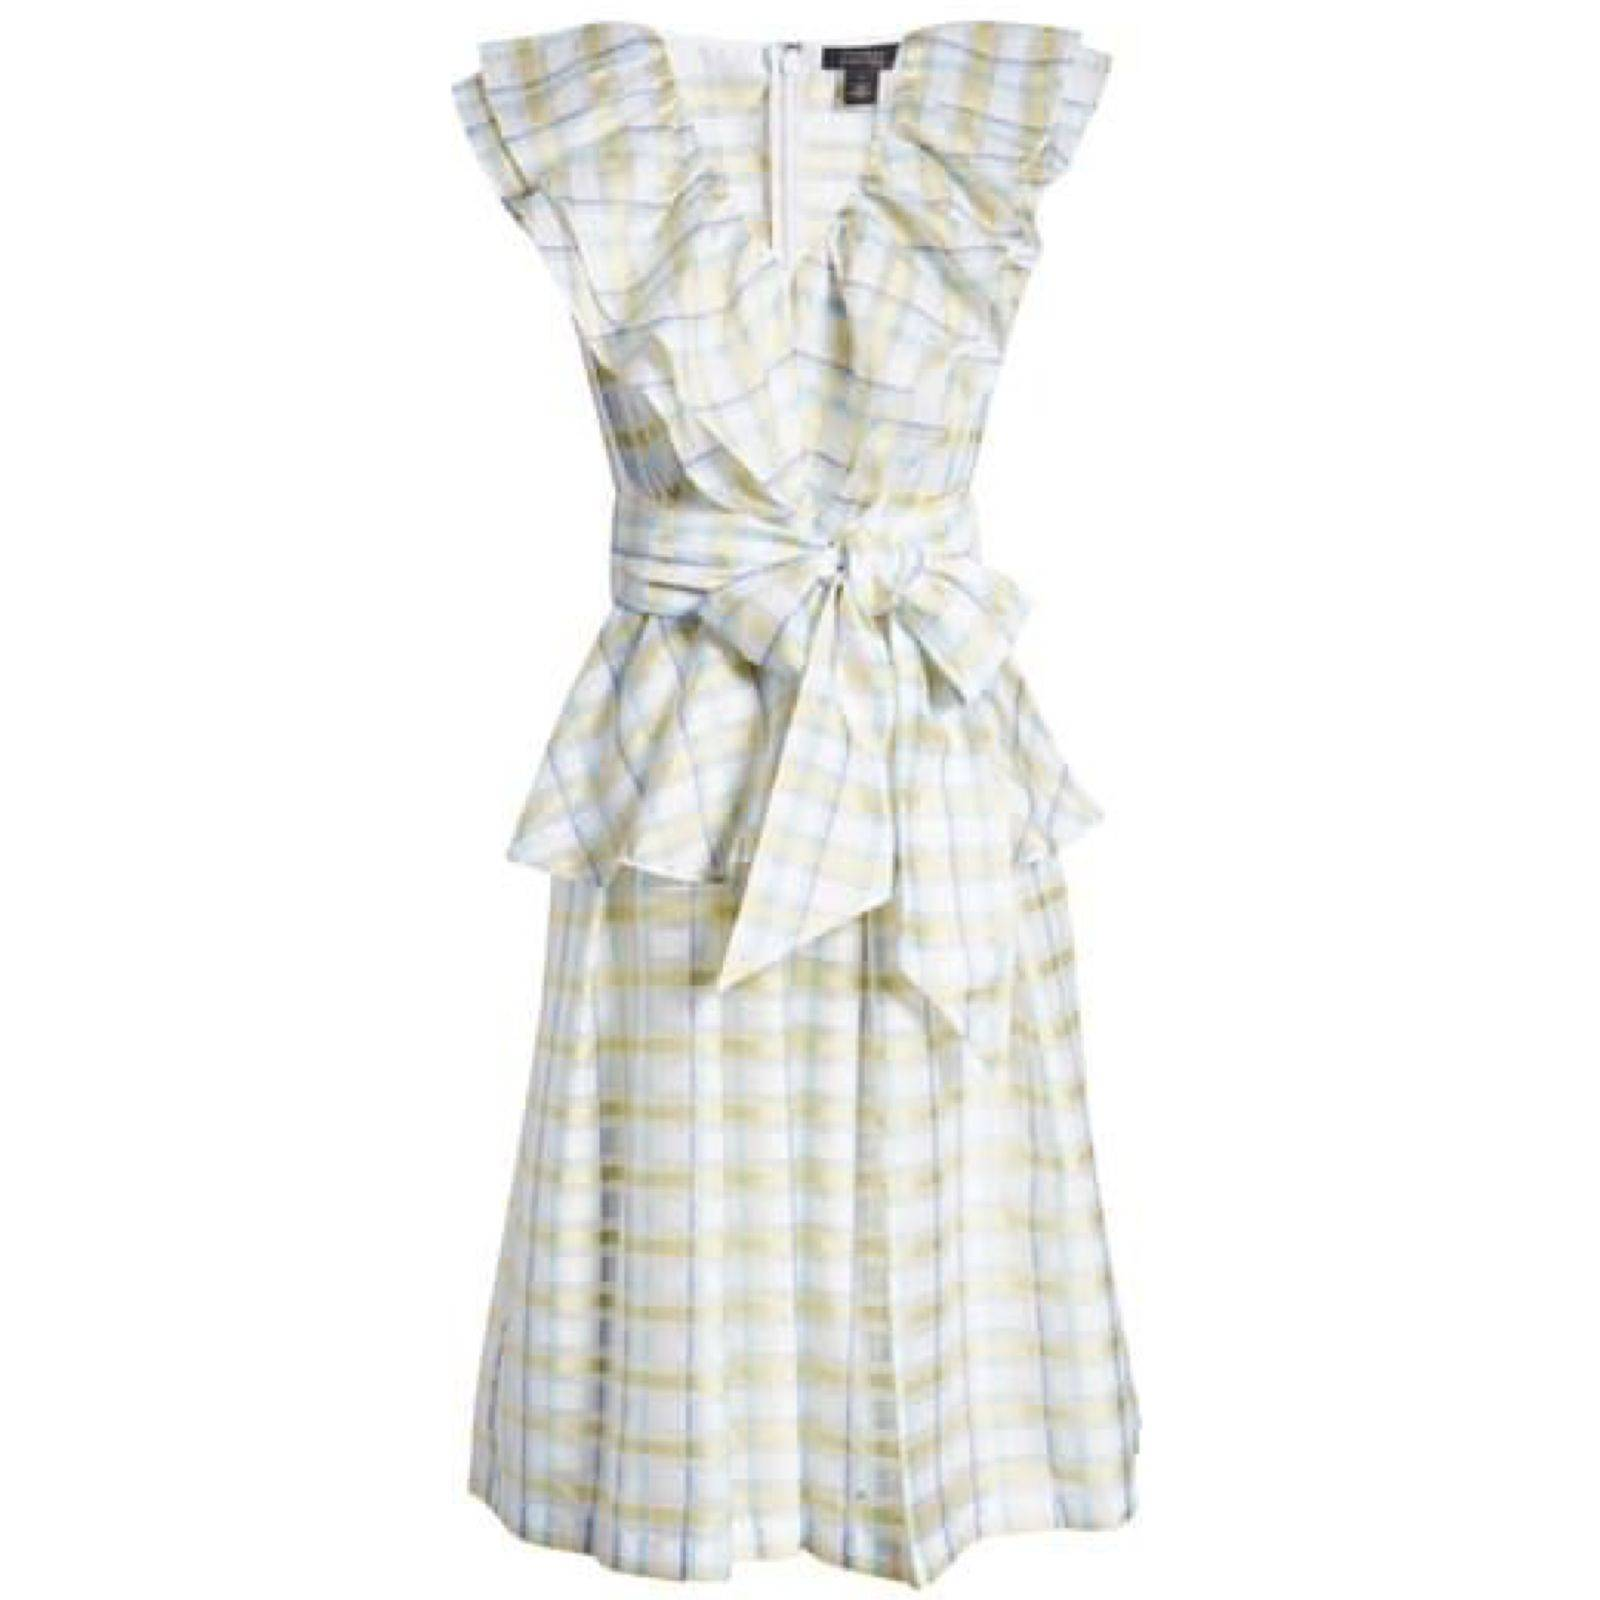 Halogen x Atlantic Pacific Plaid Dress L